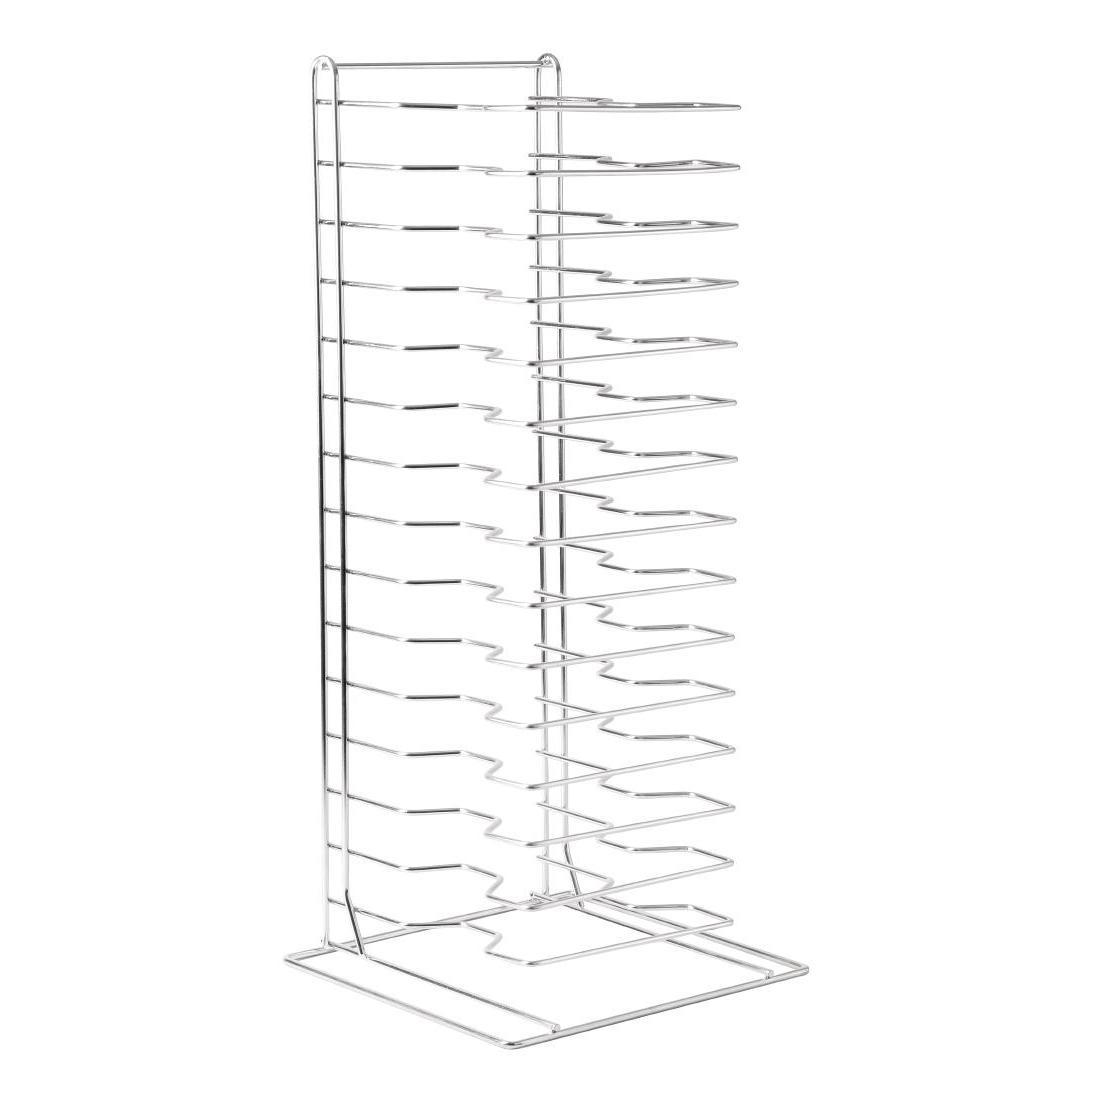 Vogue Pizza Pan Stacking Rack 15 Slot - Each - F027